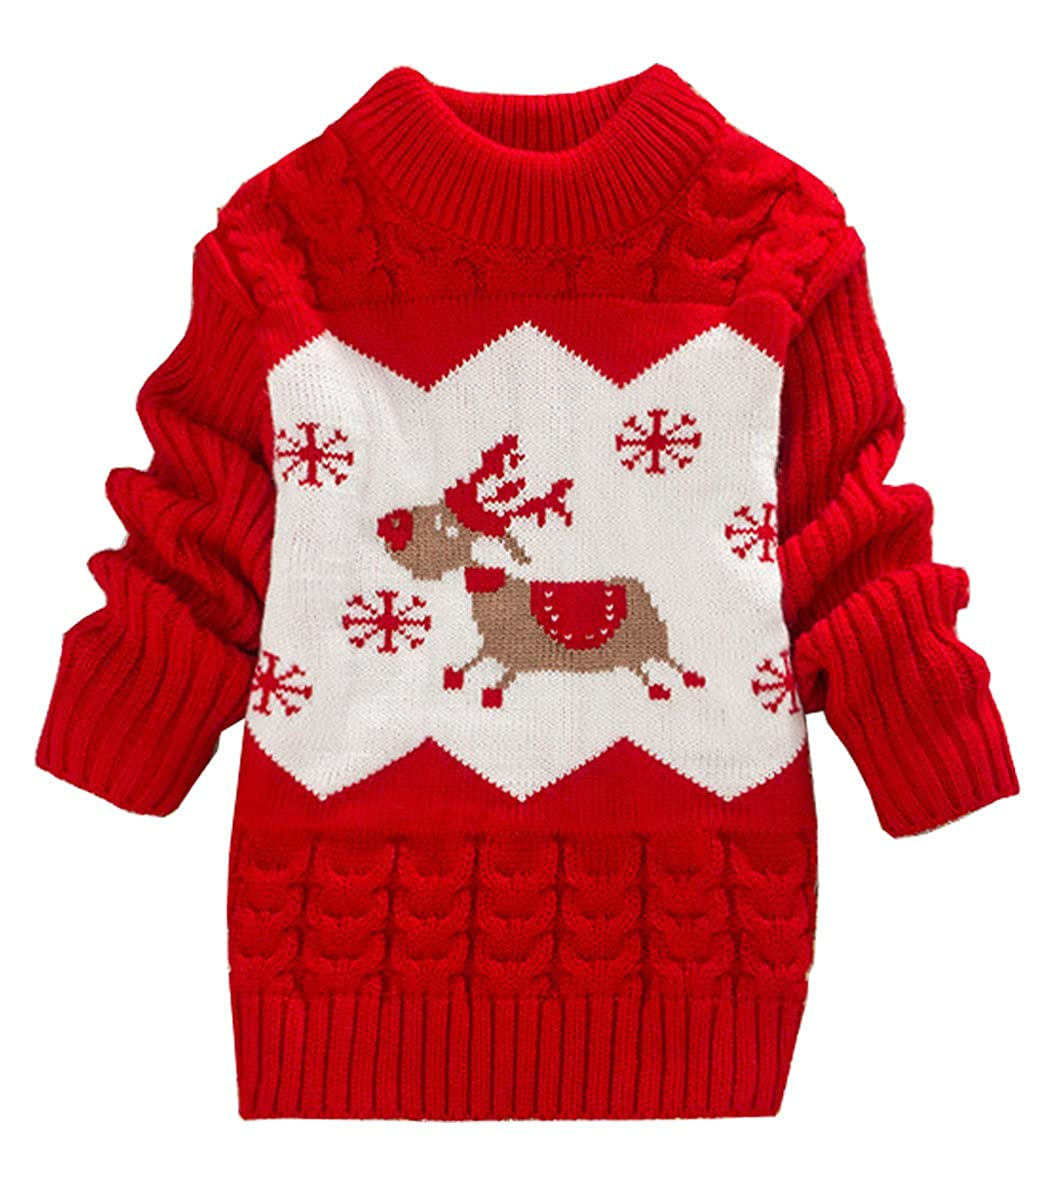 Zhuannian Baby Toddler Boy Knitted Cartoon Reindeer Christmas Pullover Sweater